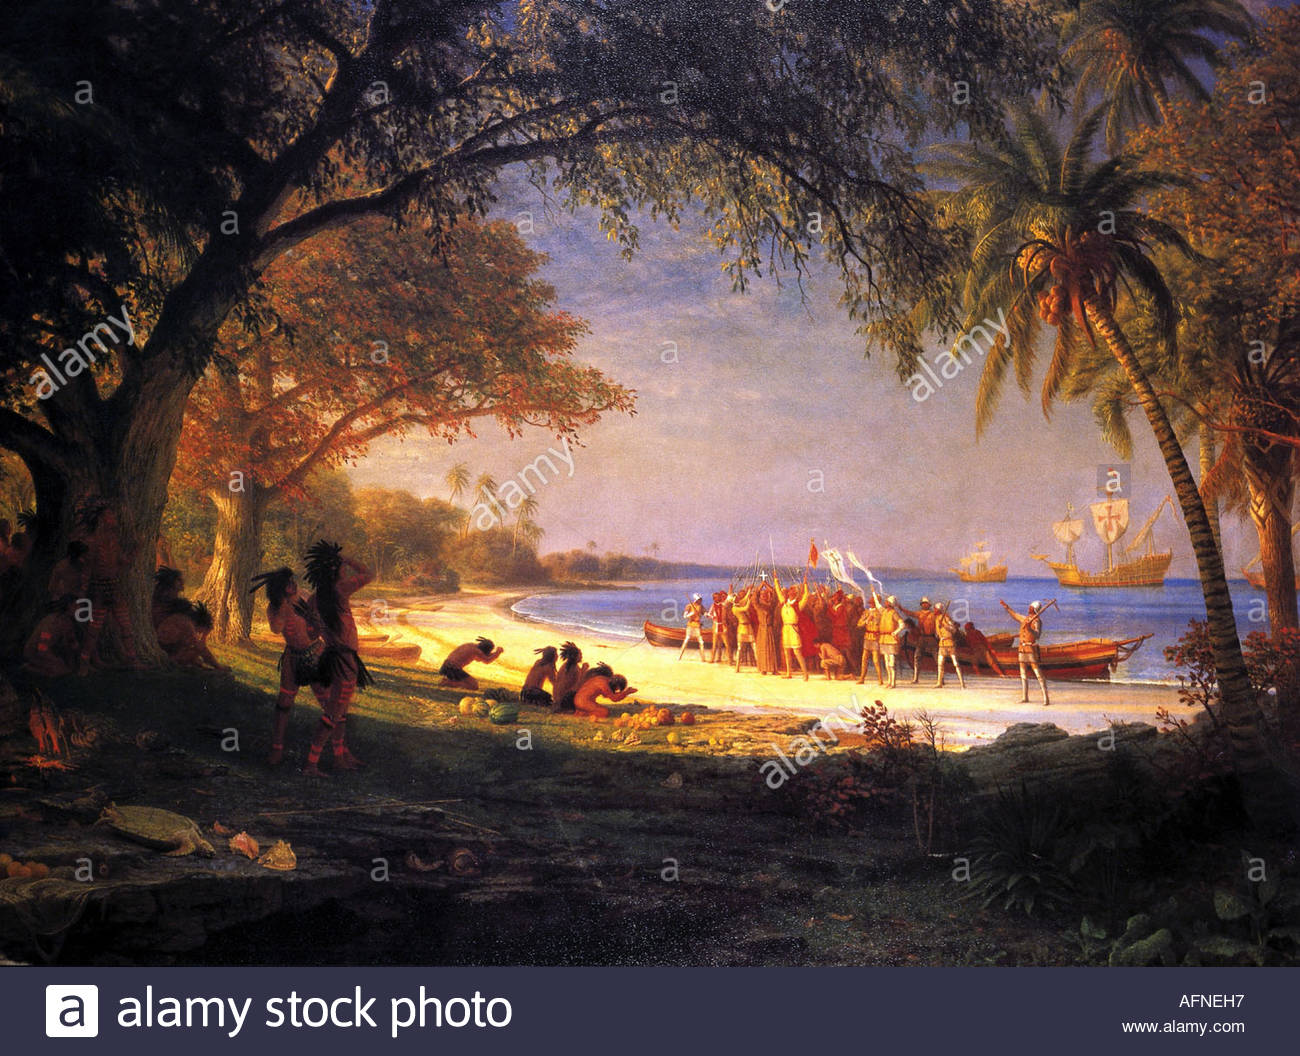 Columbus, Christopher, 1451 - 20.5.1506, Italian explorer, scene, arriving at Guanahani, 12.10.1492, history painting, - Stock Image